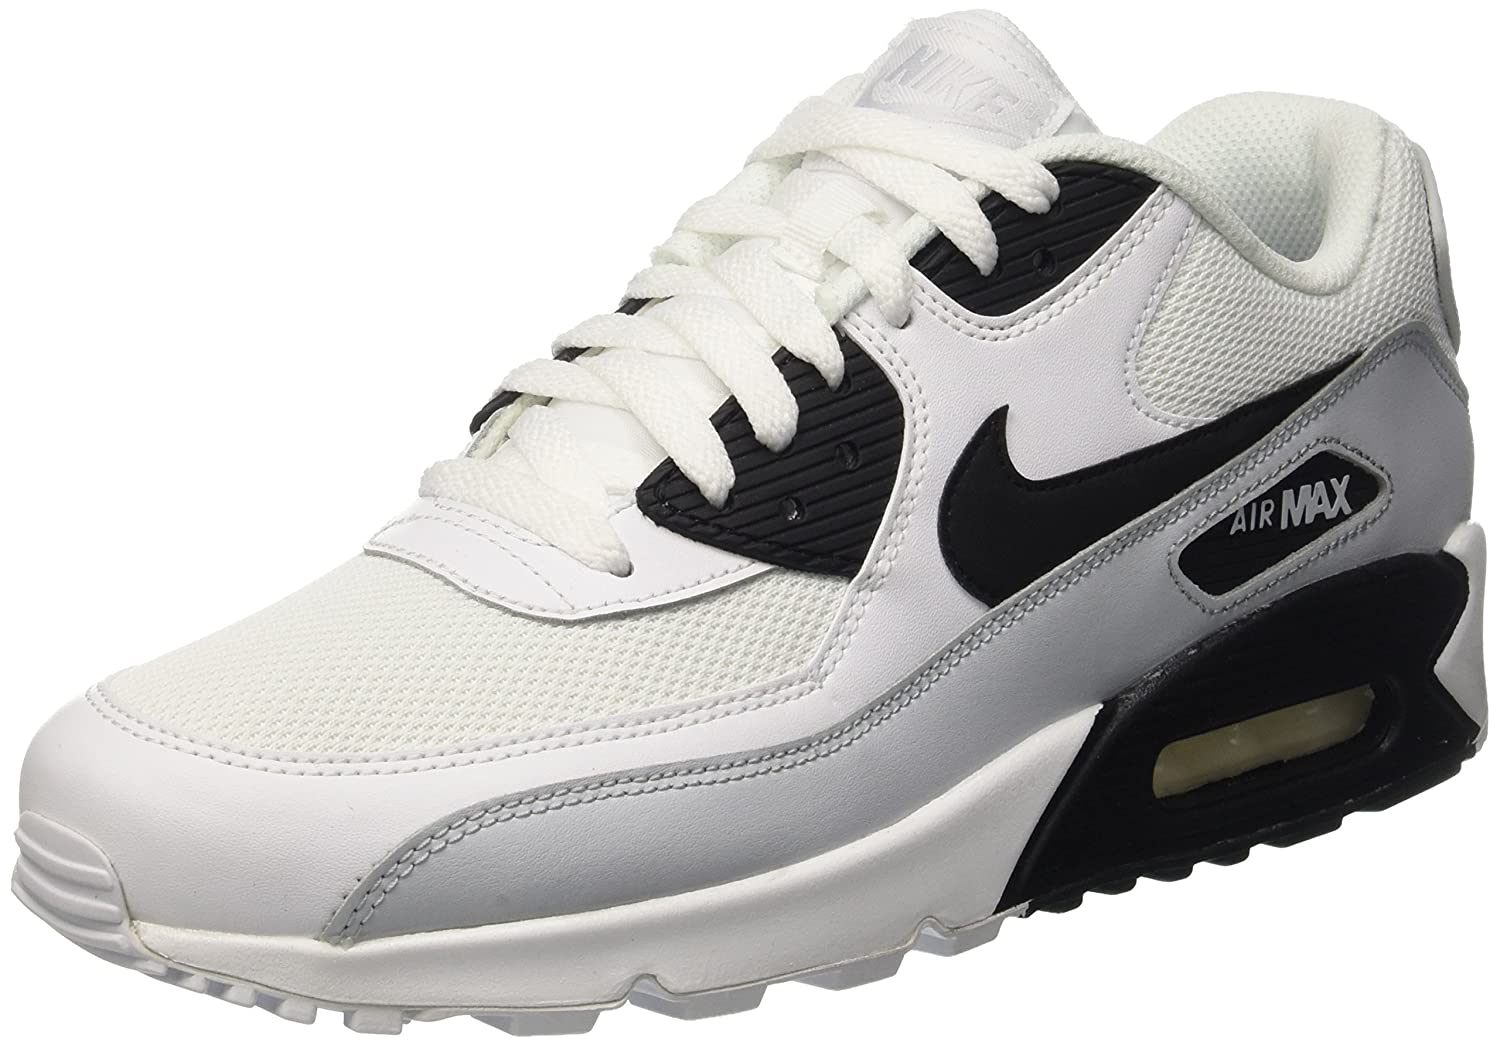 cbeb9cdf5b order nike air max plus tn marinen recruiting 665b1 e9bdd